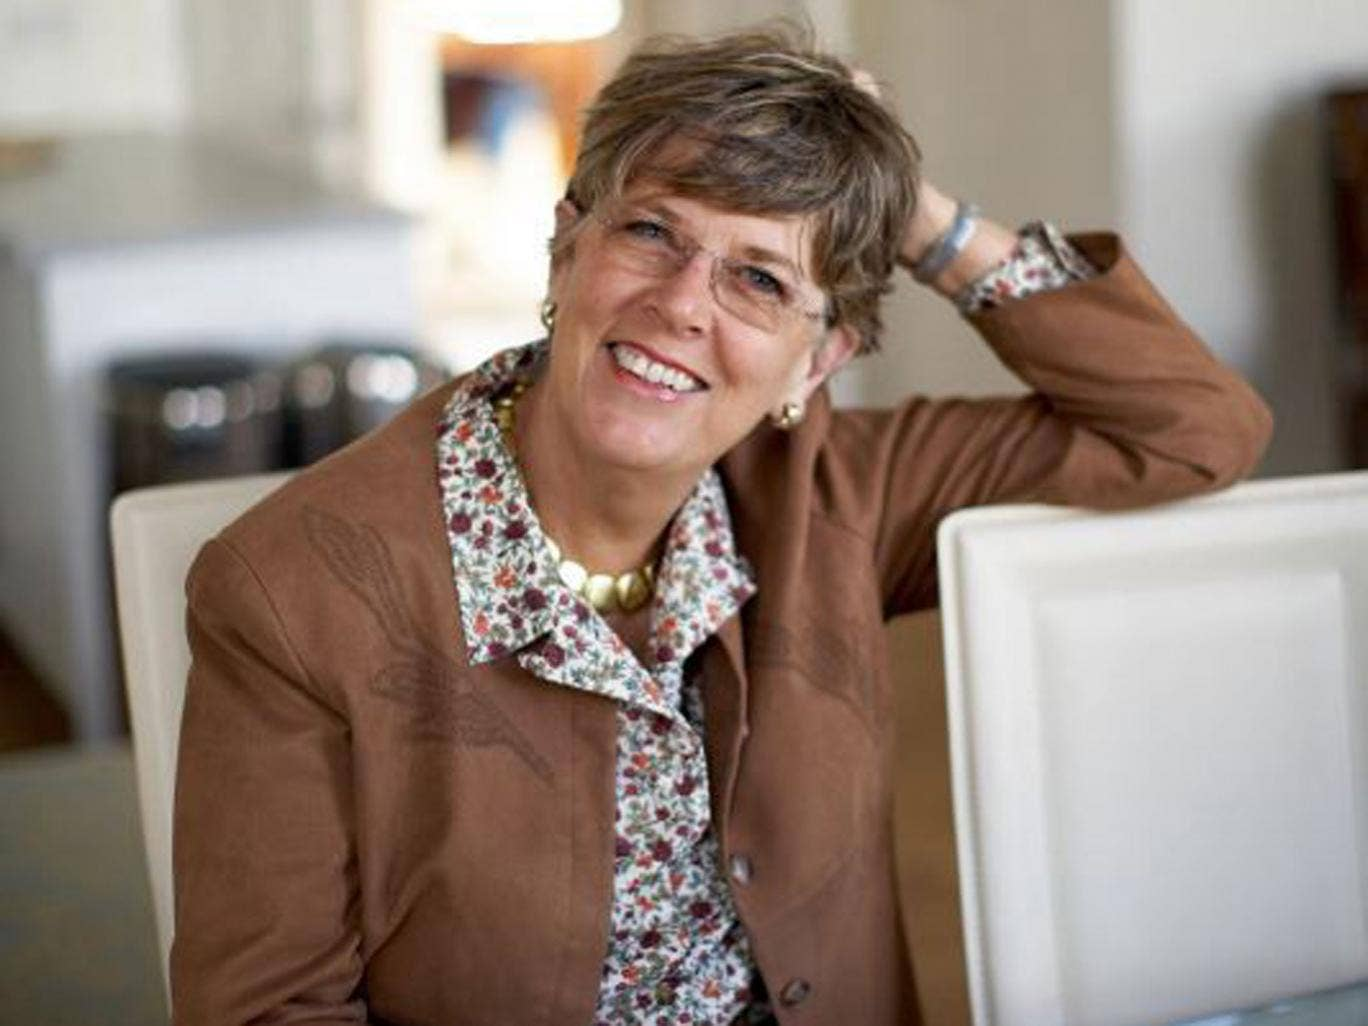 Prue Leith: 'I try not to eat it too often, though, because like most of the world I always seem to be half a stone overweight.'